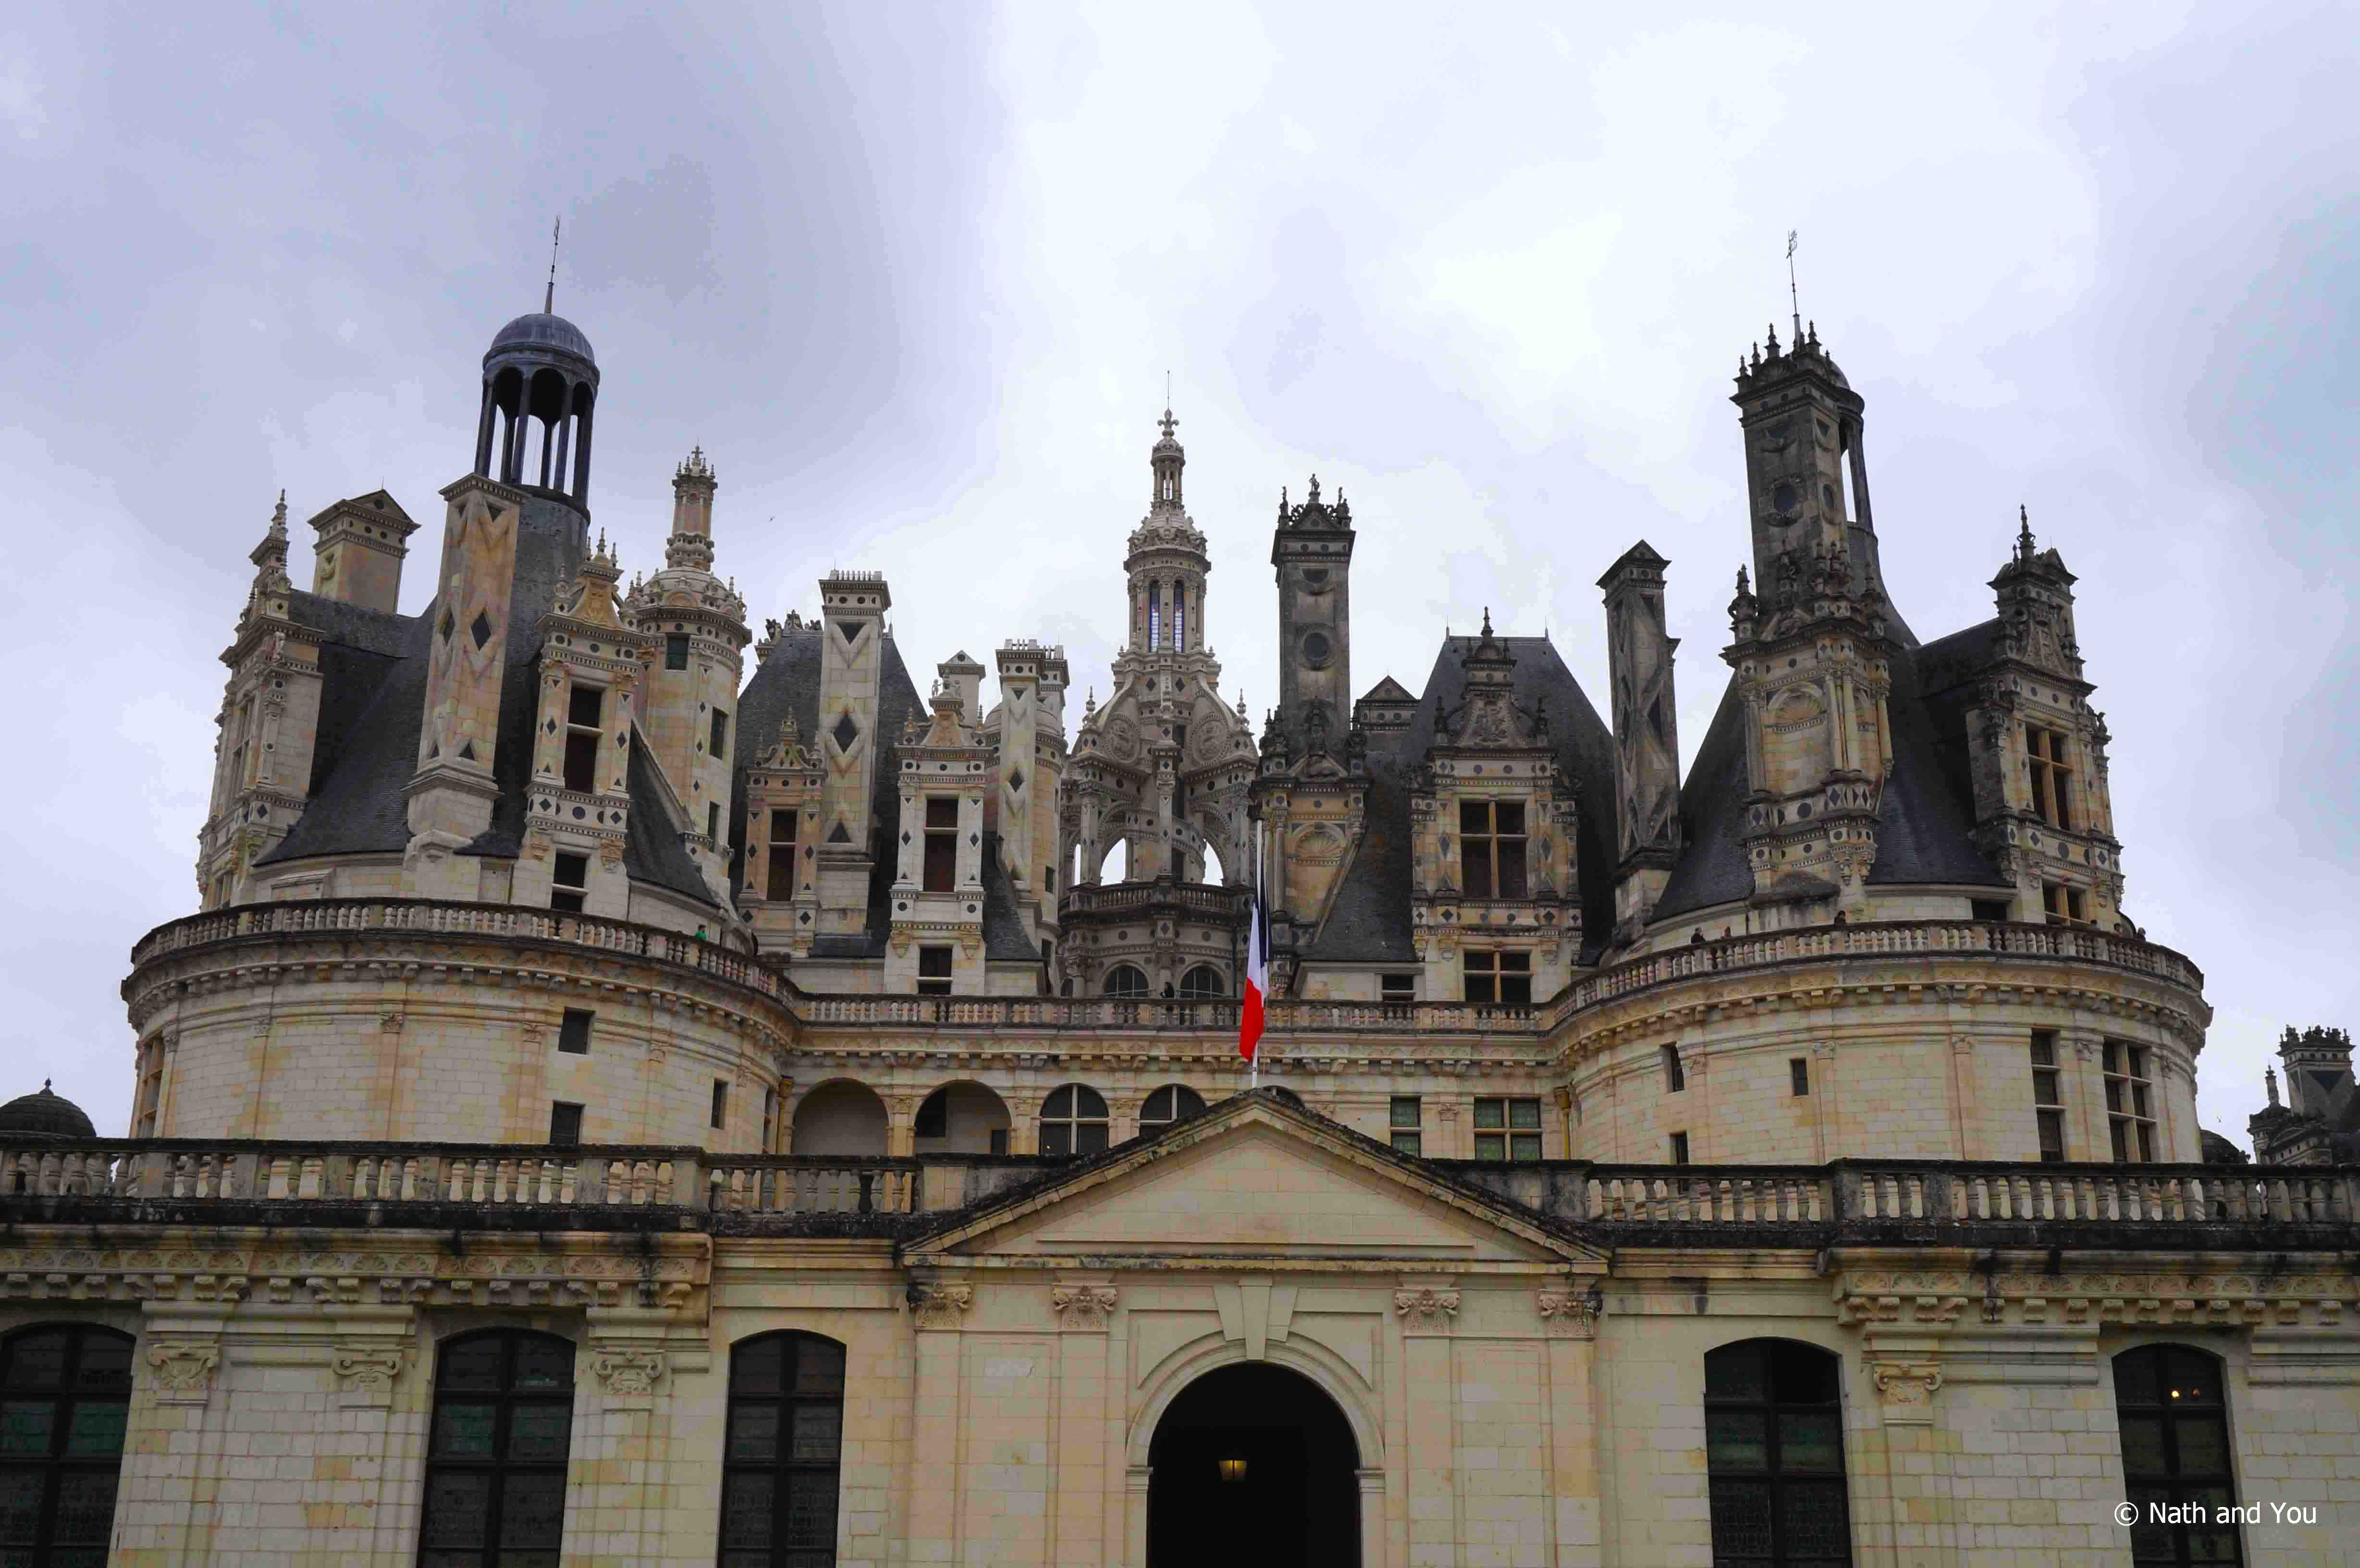 Chambord-2-Chateaux-Loire-Nath-and-You